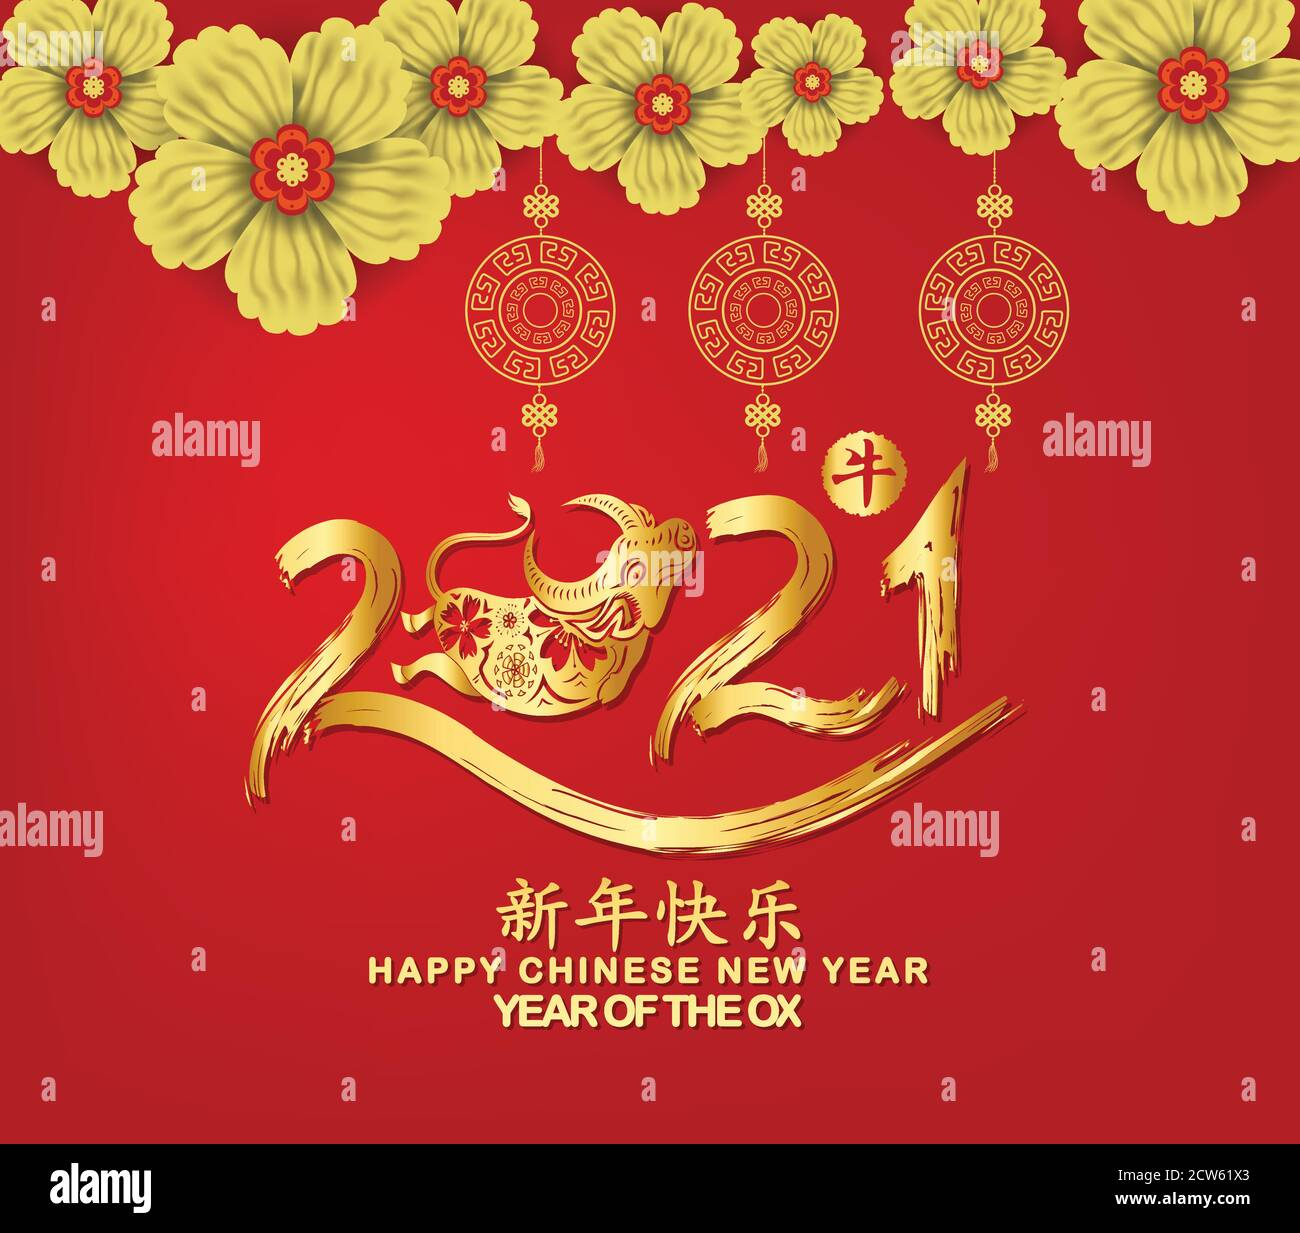 25 Chinese New Year Paper Cutting Year of Ox Vector Design for ...